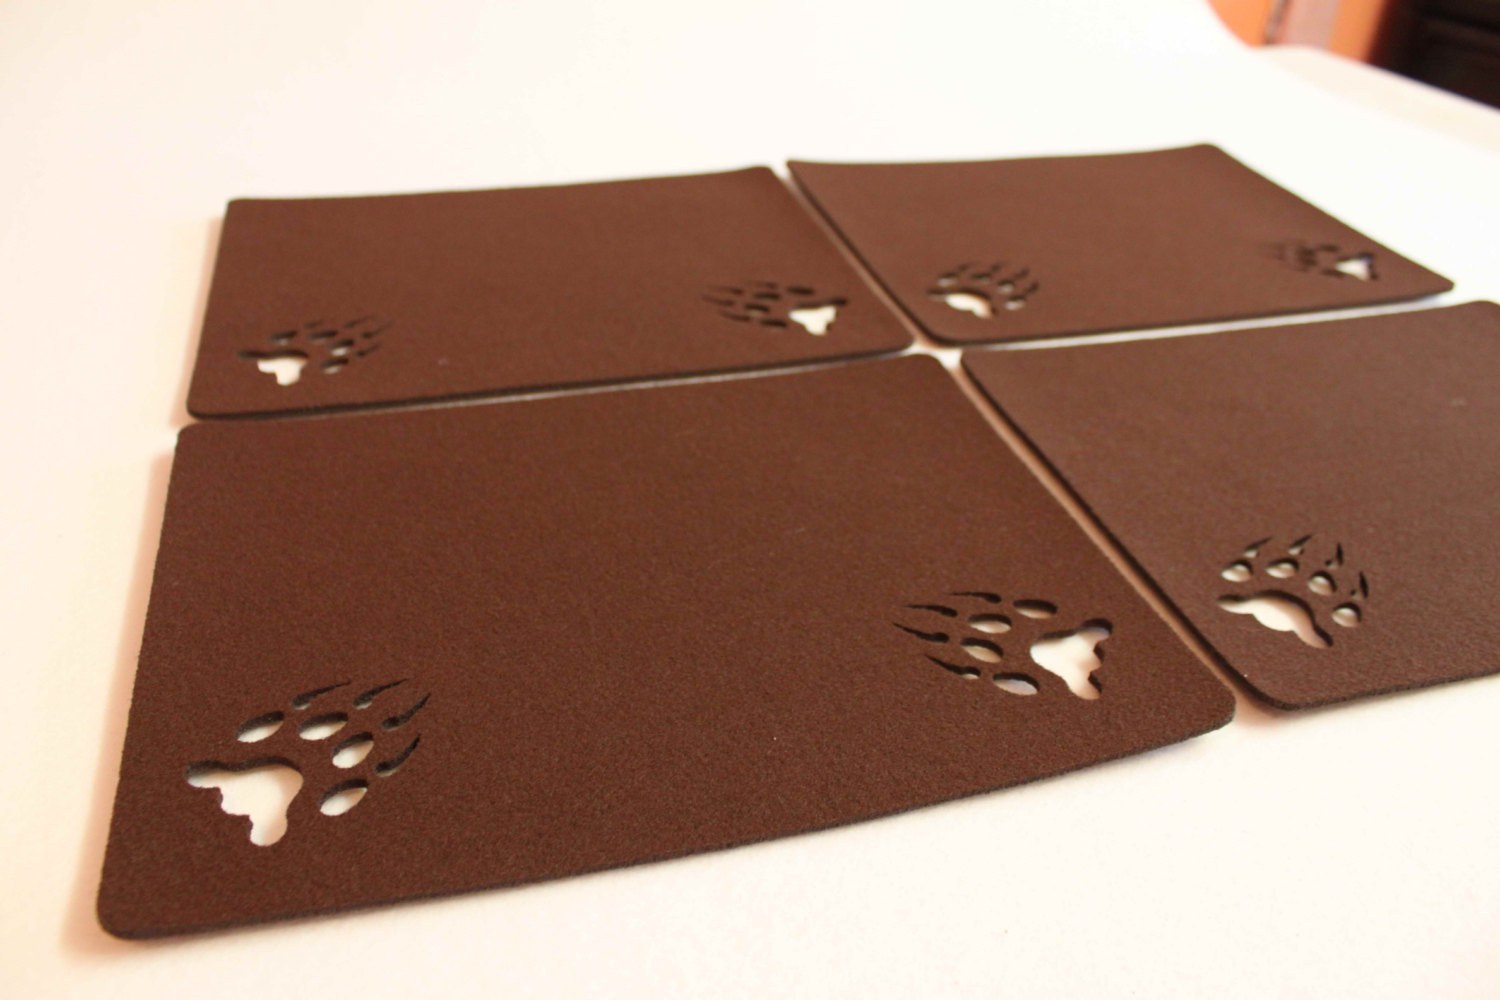 felt placemats animal accent decorations mat table set laser cut fullxfull cqjv placemat wicker storage ott coffee ethan allen leather furniture jcpenney rugs clearance tiffany